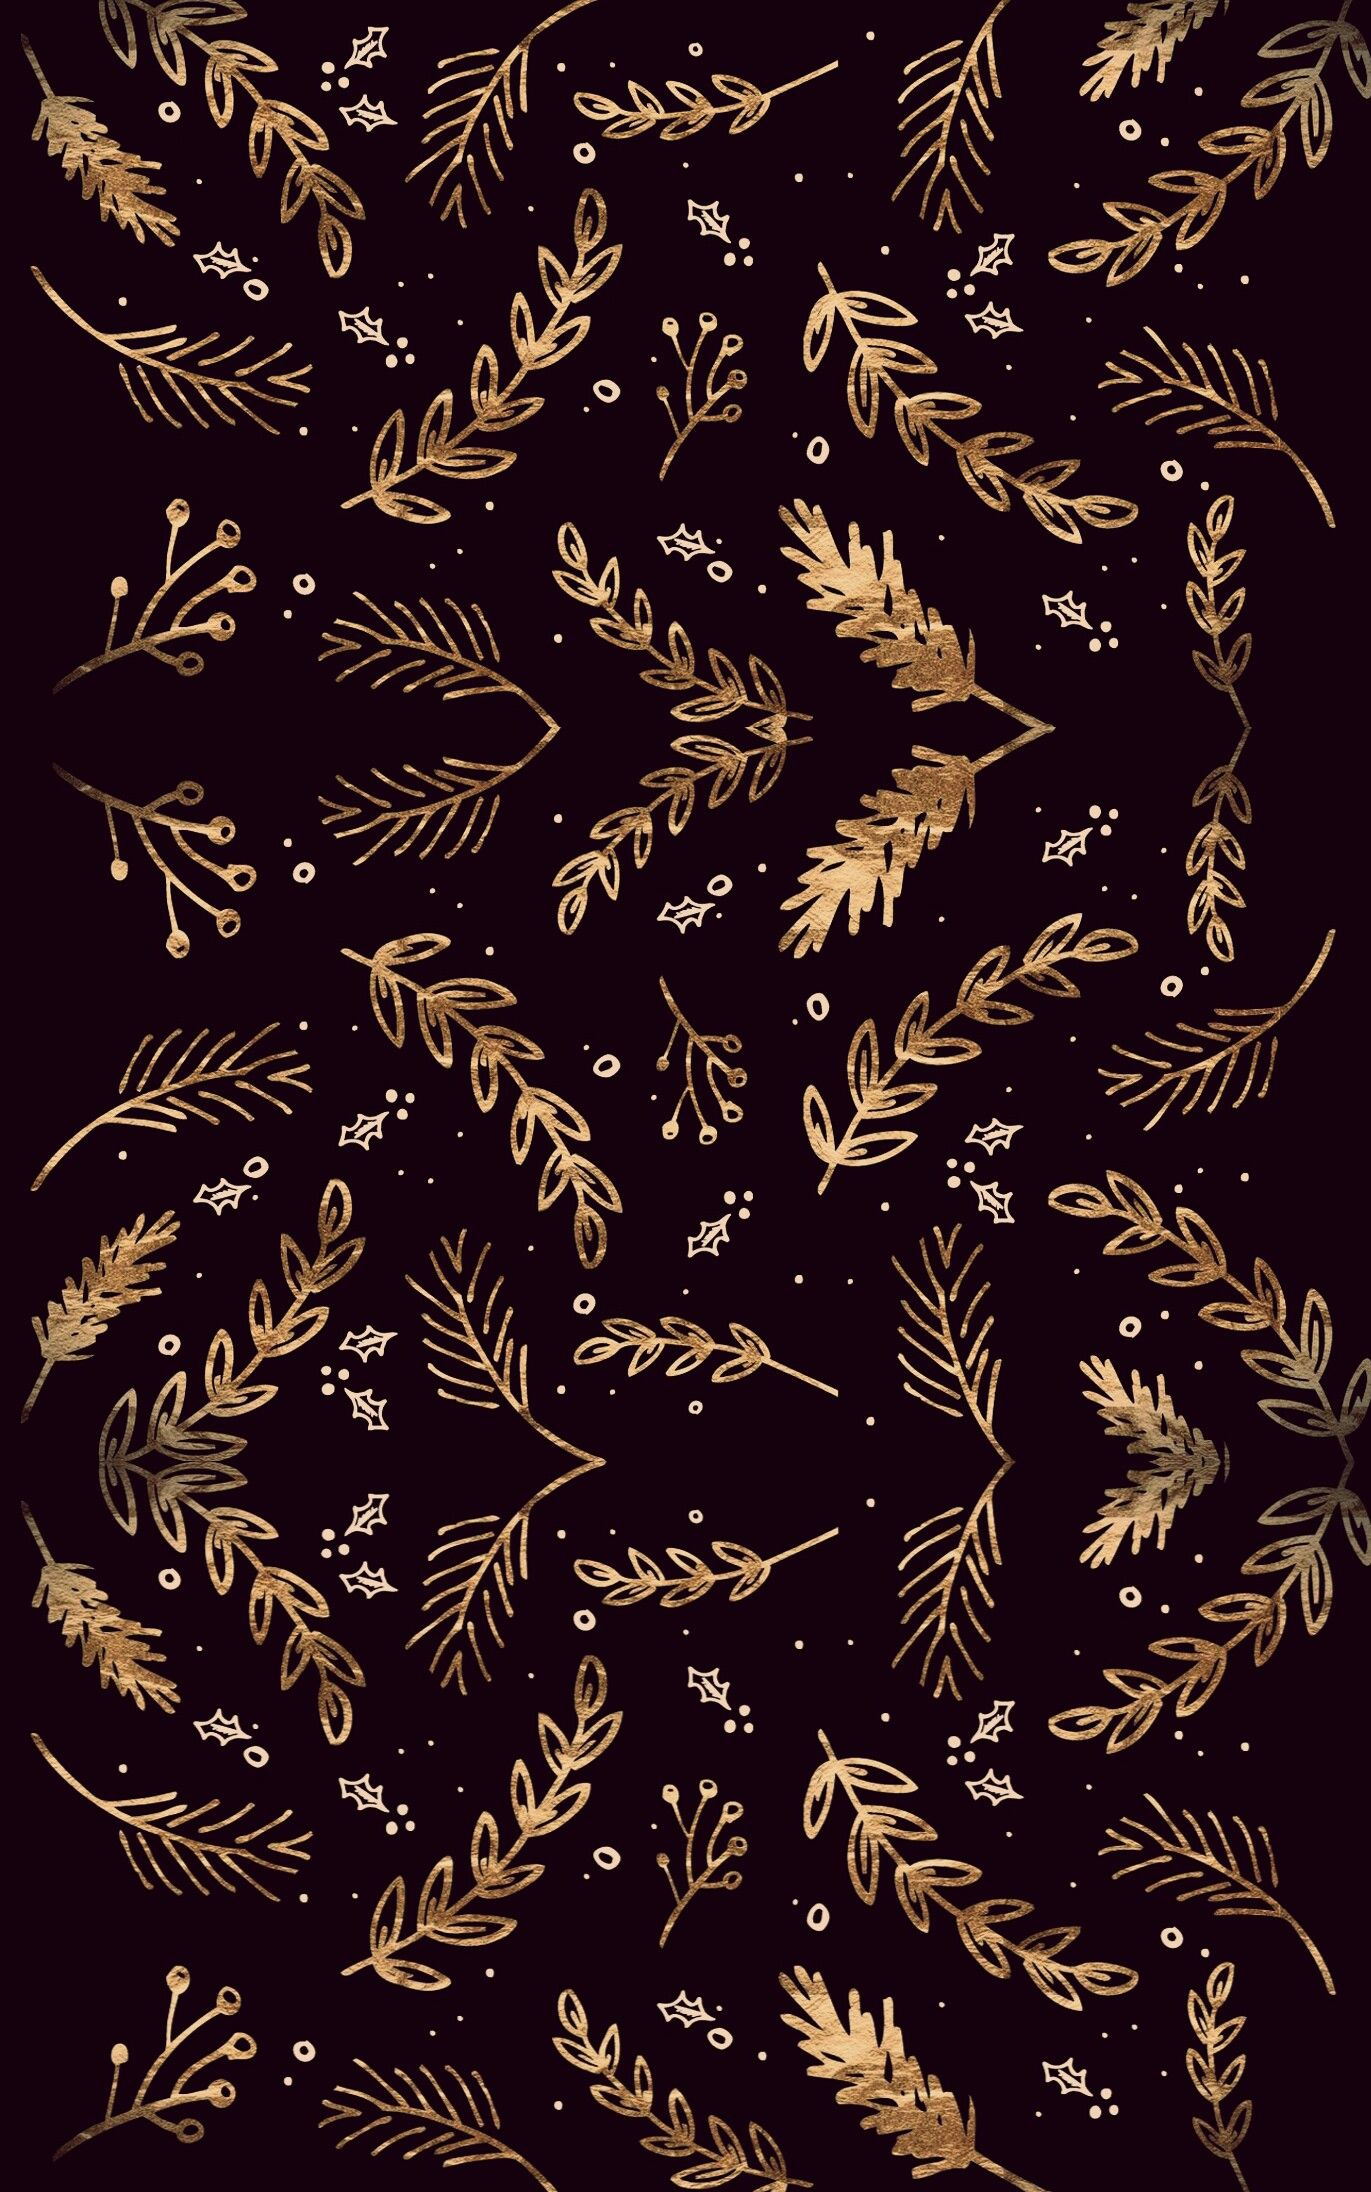 List of Good Gold And Black Wallpaper Iphone for iPhone 11 Pro Today